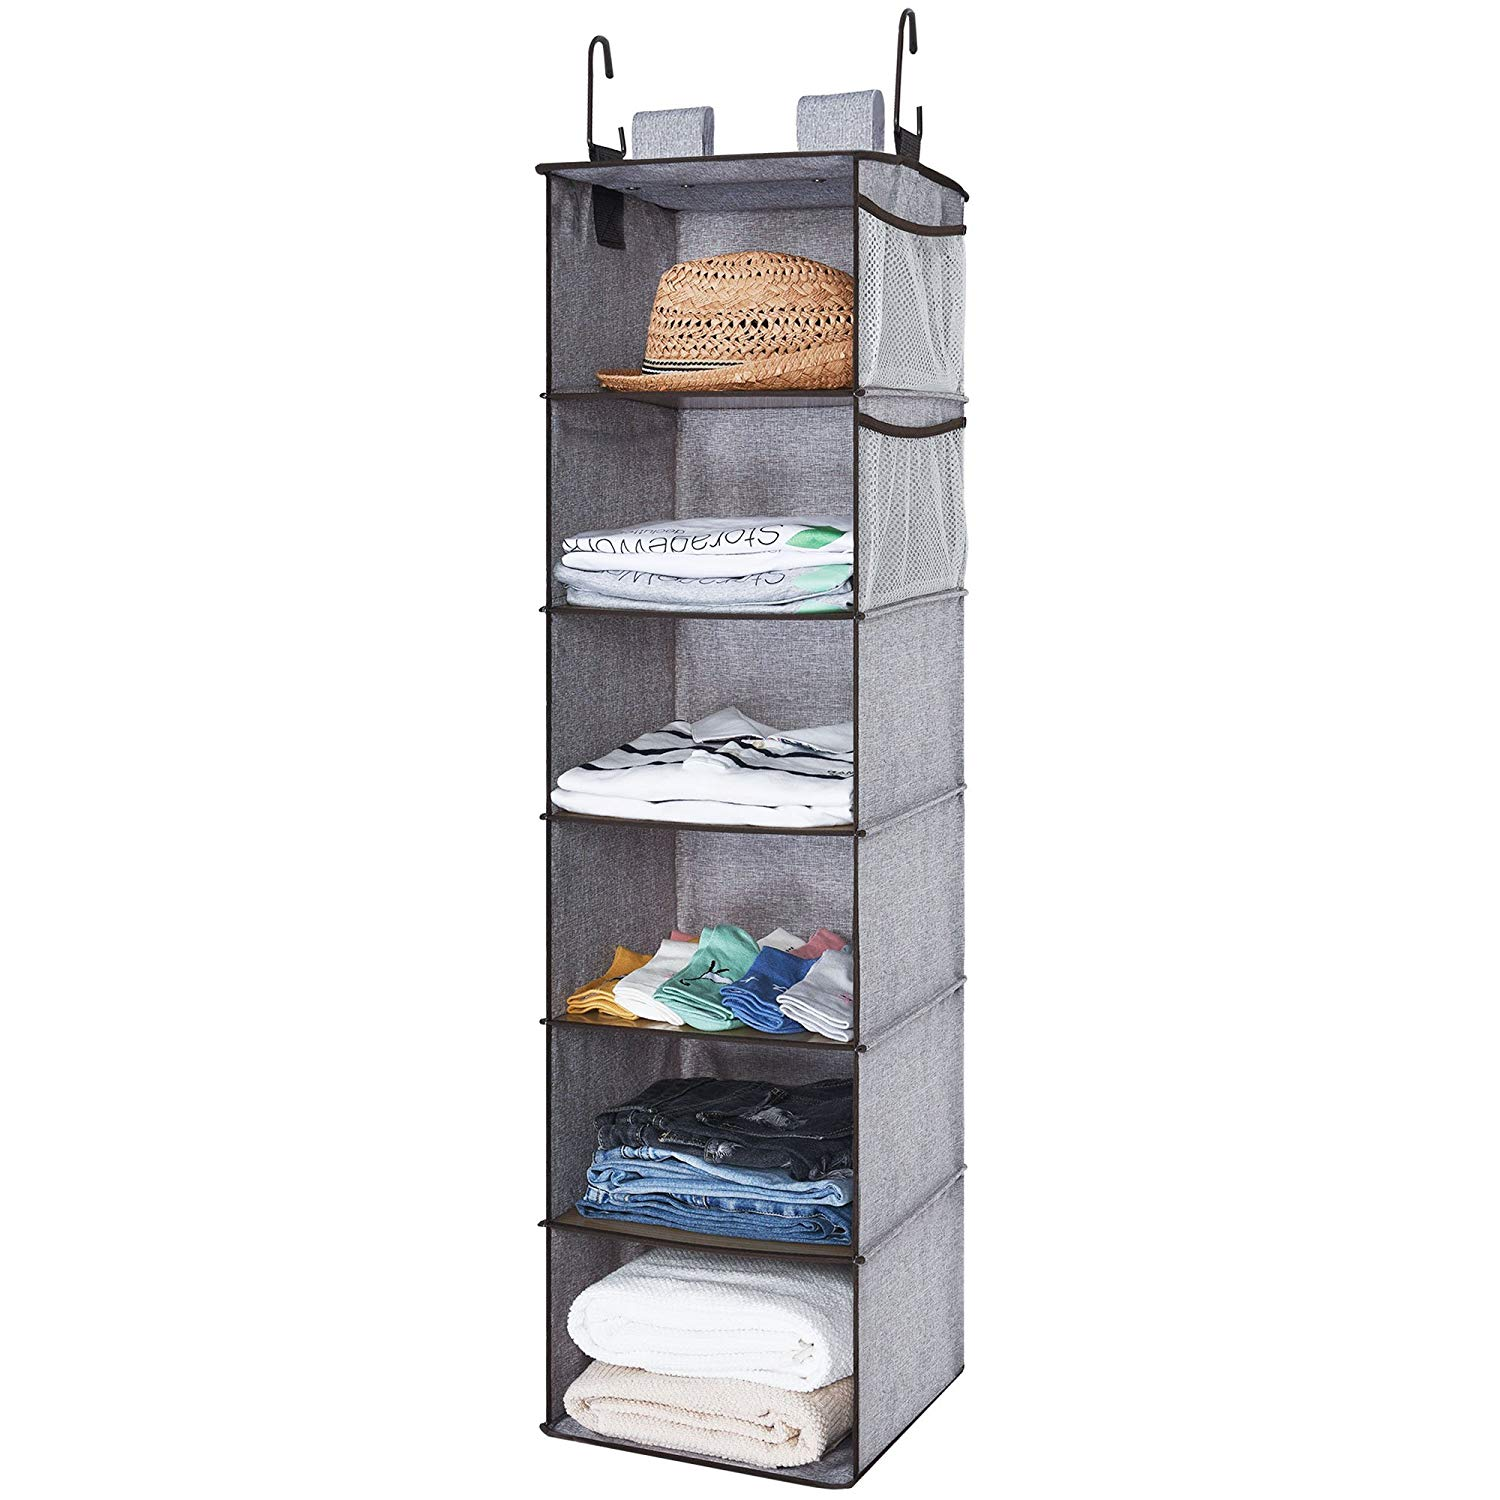 Traveller Location: StorageWorks Closet Hanging Organizer, 2 Ways Dorm Closet  Organizers with Thickened Board, Gray, 6 Shelves, Side Pockets, 12x12x42  inches: Home